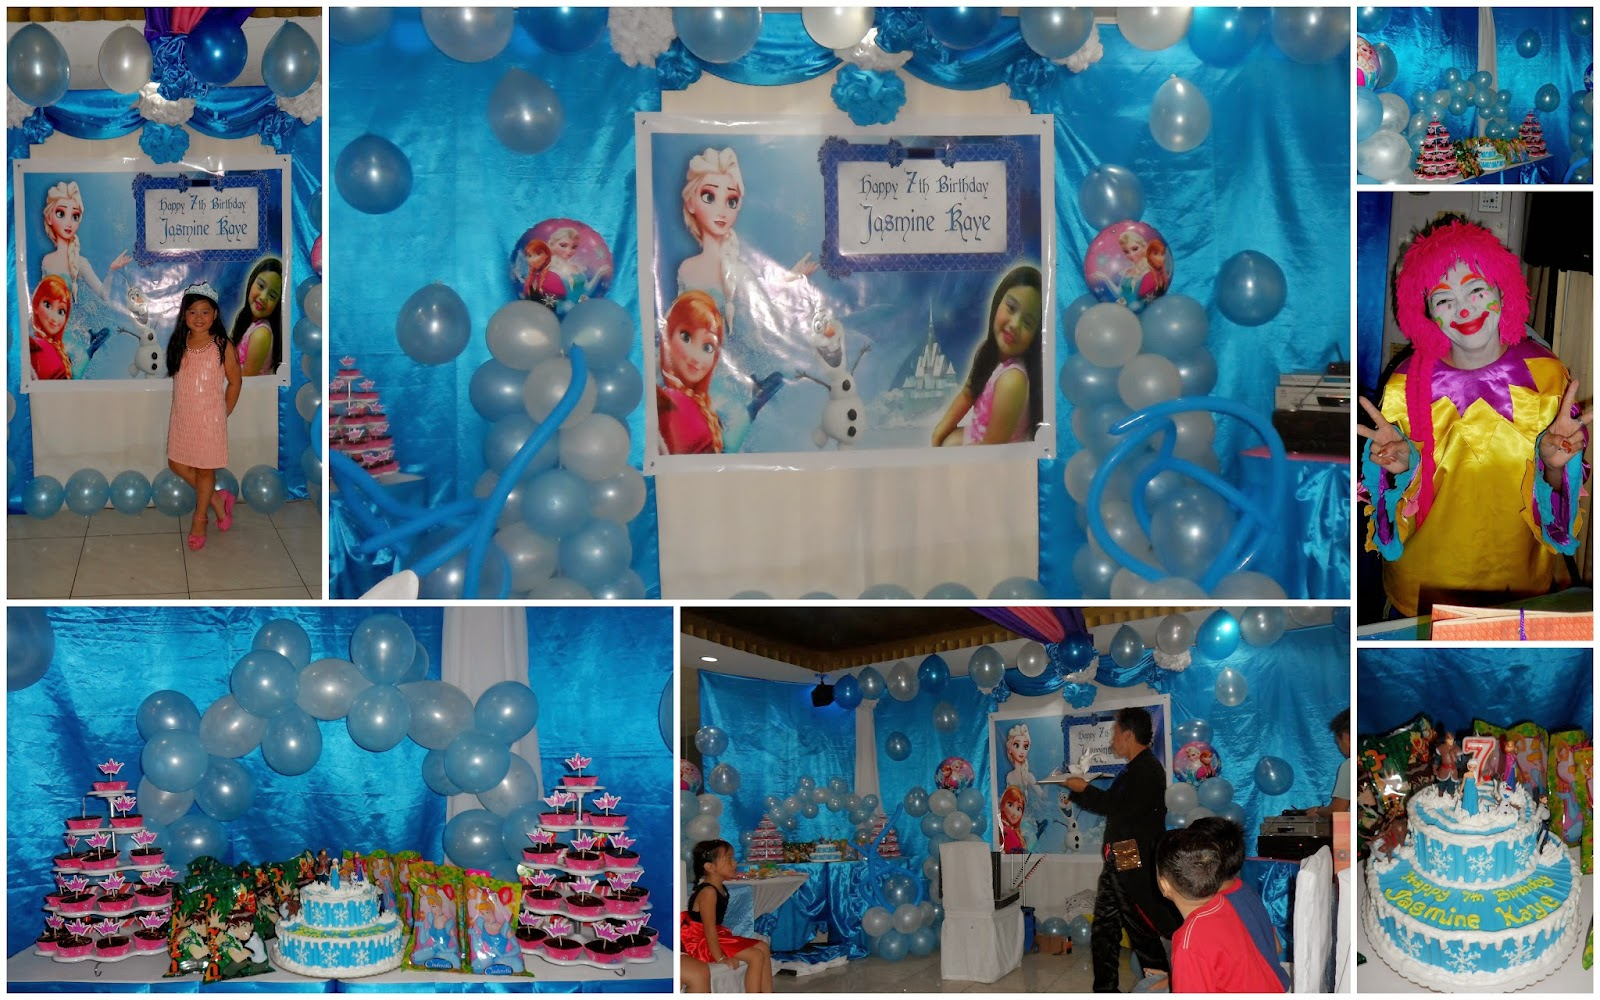 Frozen Themed 7th Birthday 3 May 2014 Athena Miel S Balloons Bubbles And Needs